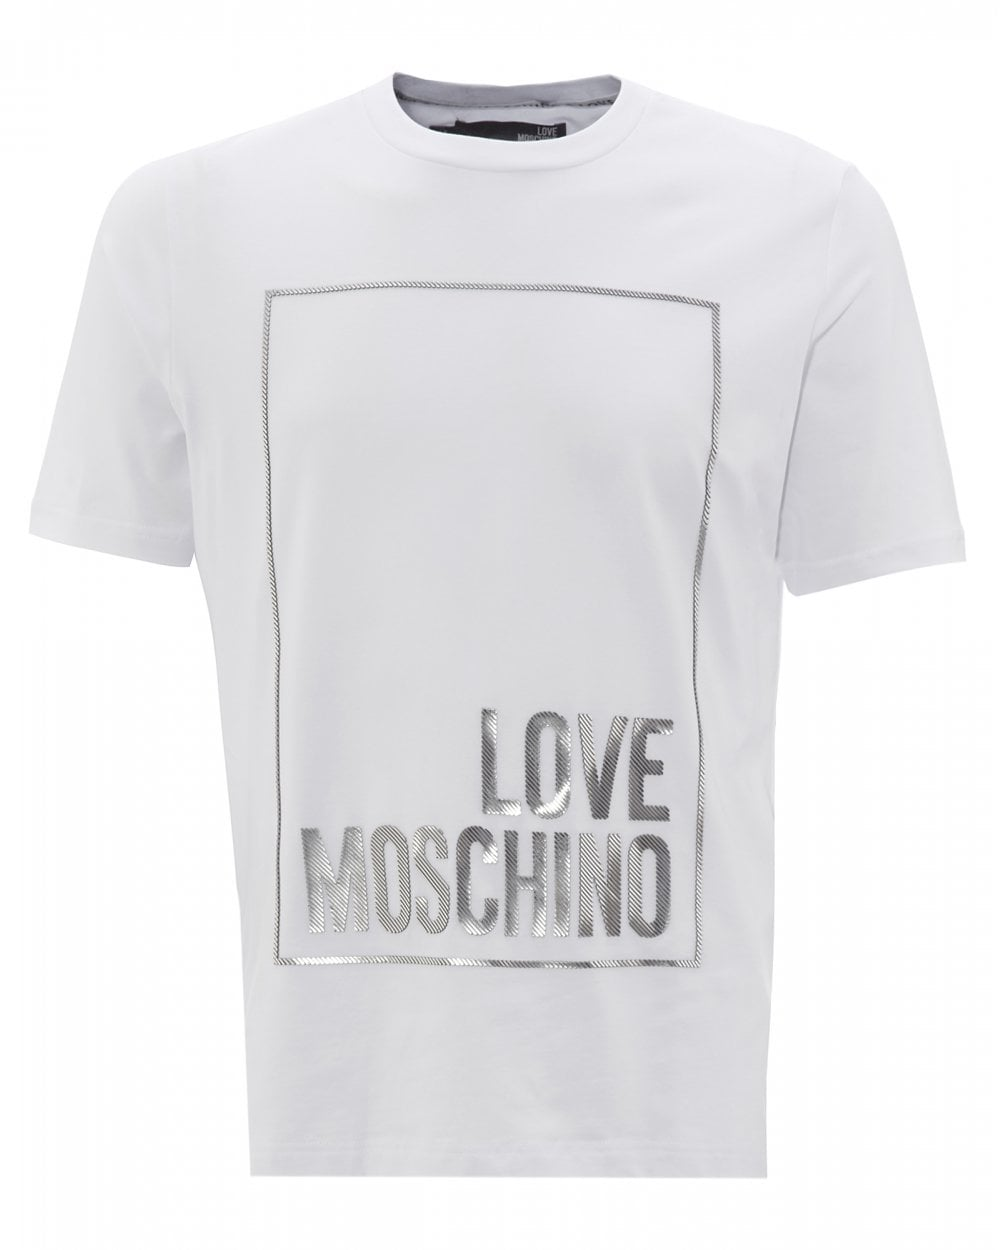 fast delivery another chance wholesale sales Mens Foiled Logo T-Shirt, White Tee